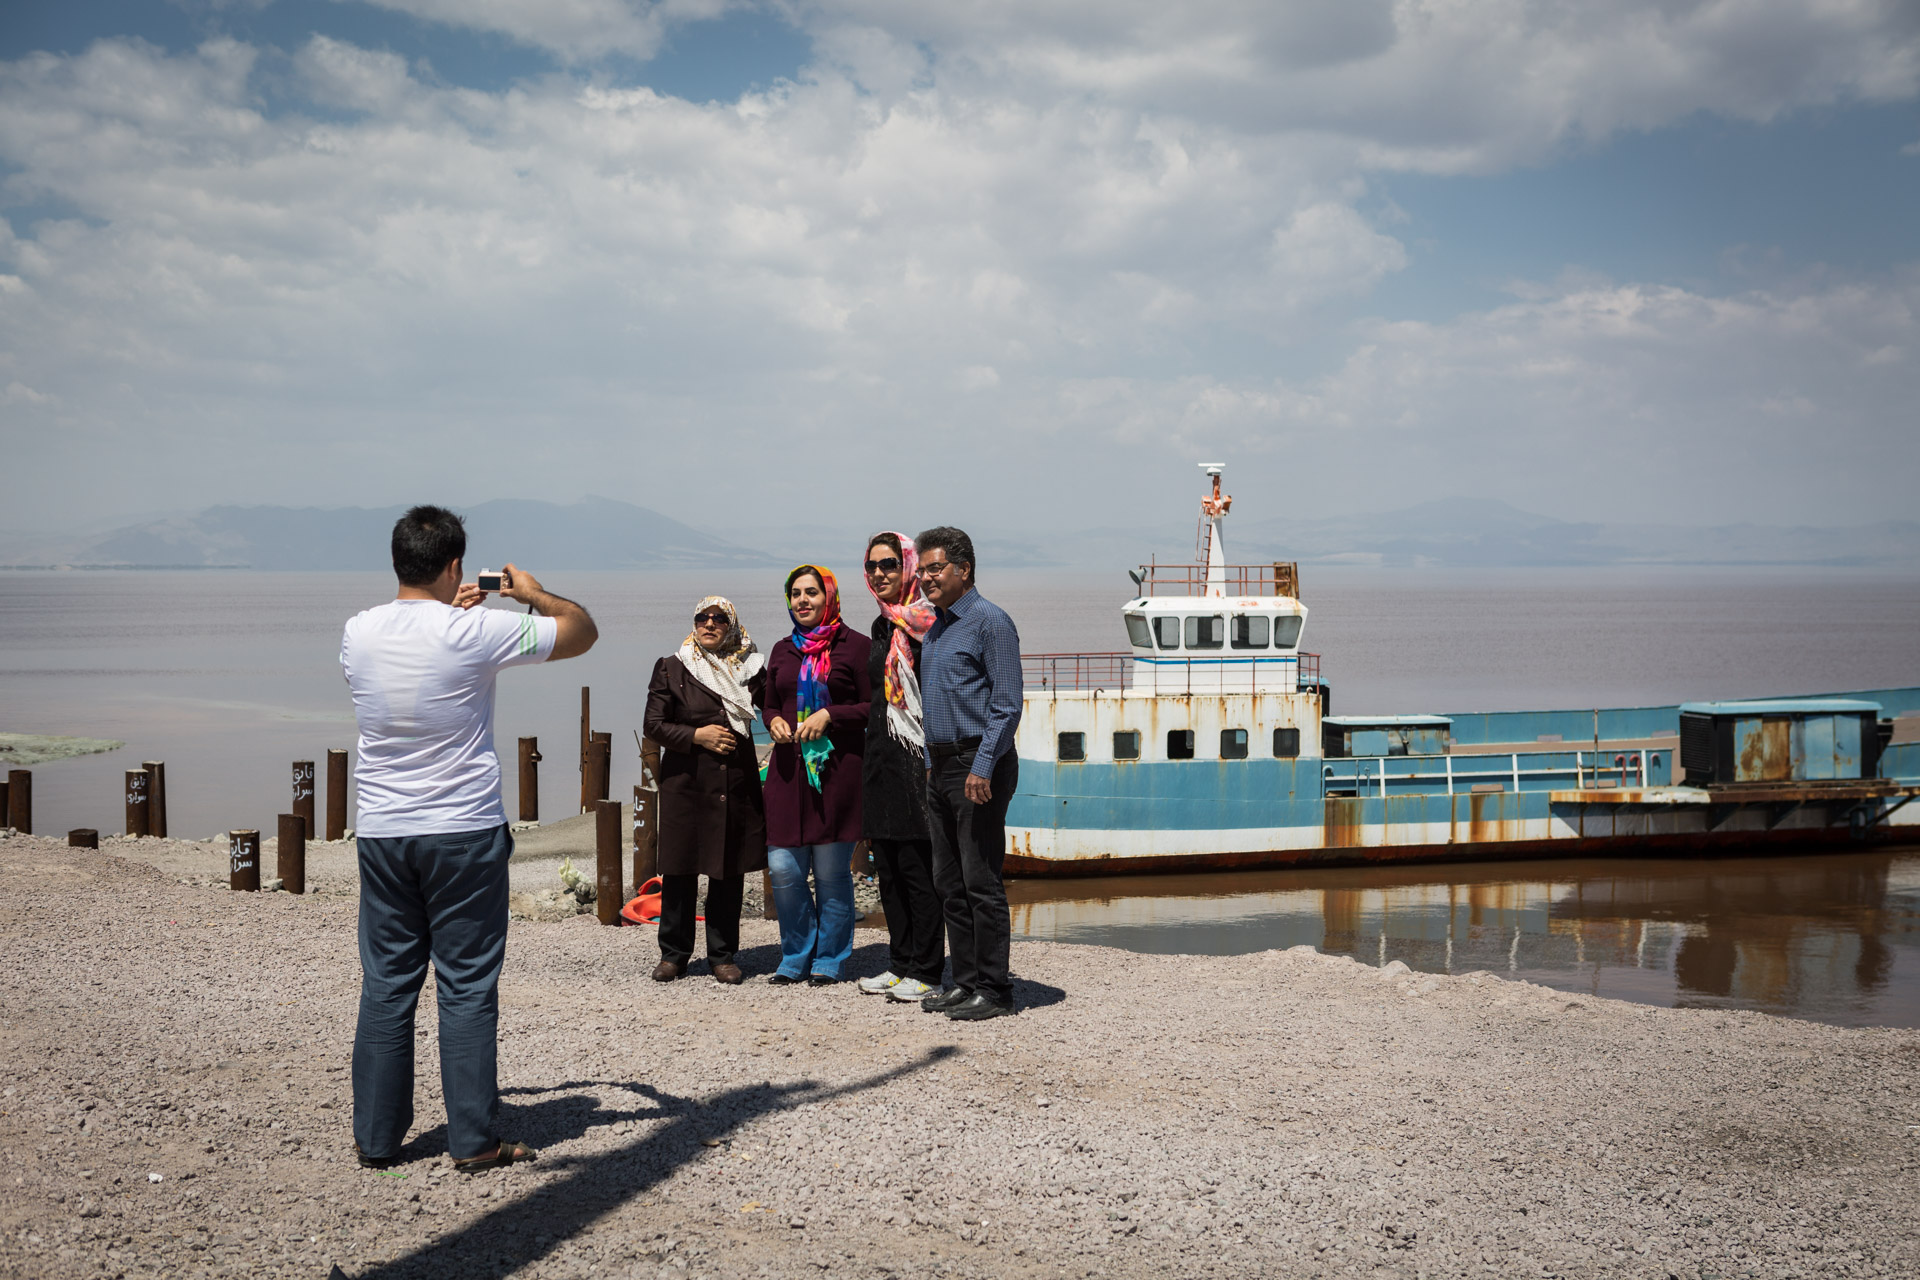 A family has its photo taken in front of the northern half of the lake, which still has water. The ferry in the background has turned into a popular subject for photos, after becoming useless when the bridge connecting the eastern and western half of the lake was finished.